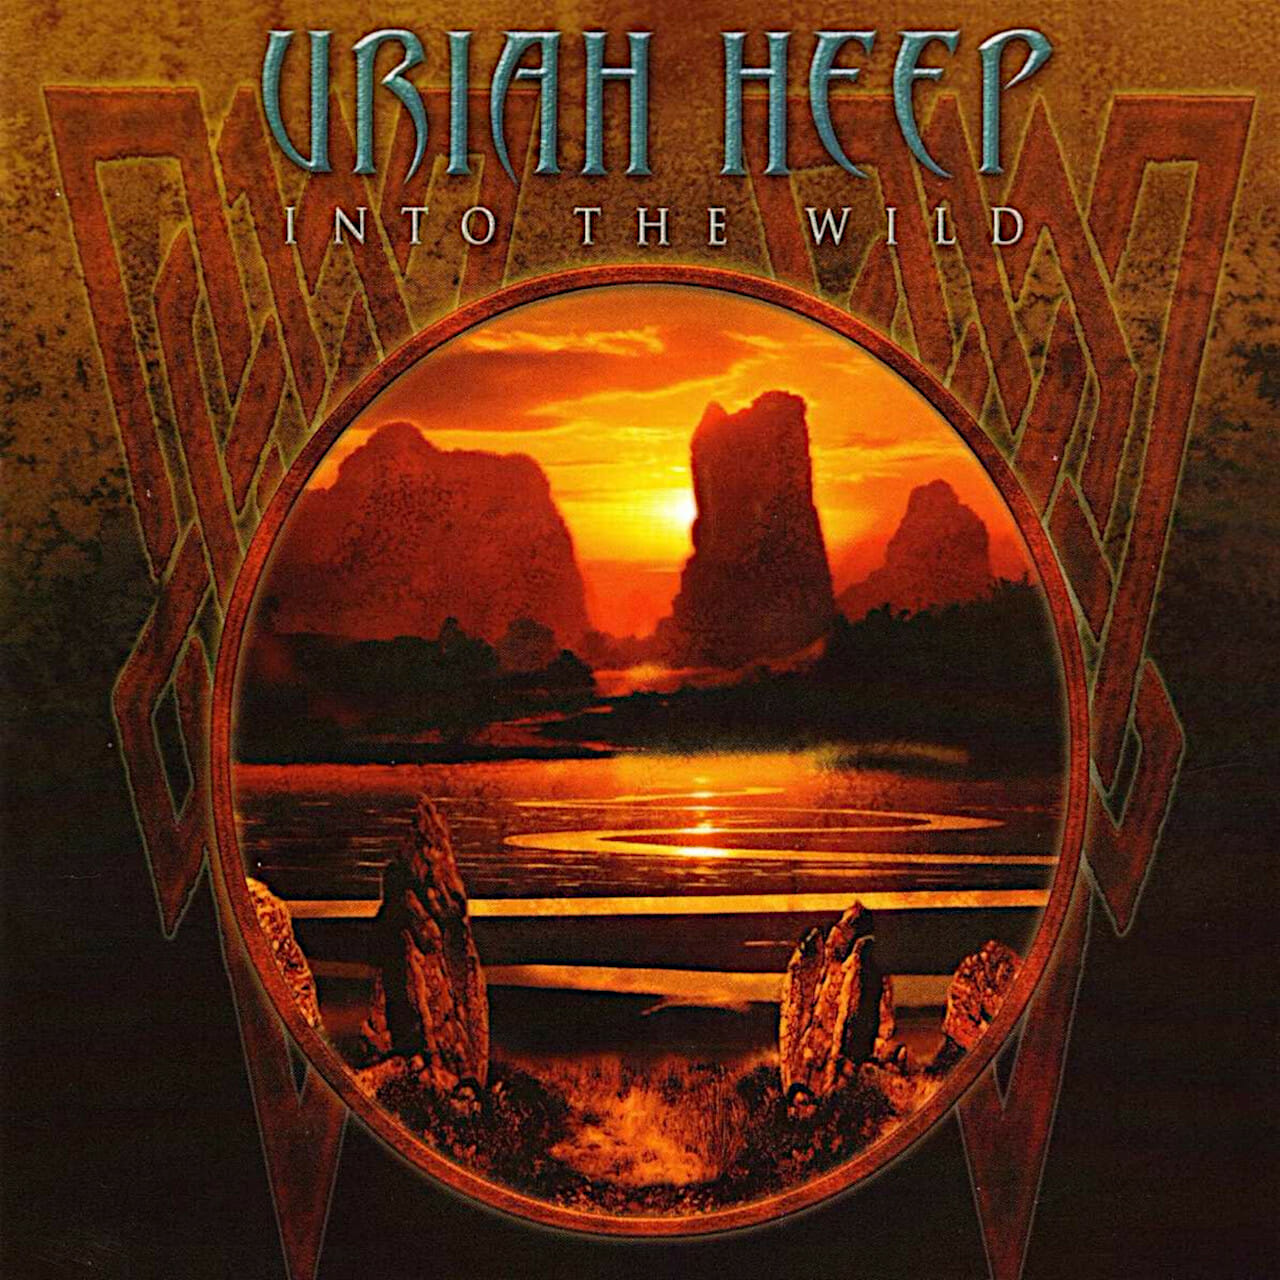 (2011) Uriah Heep – Into the Wild: Anniversary Special